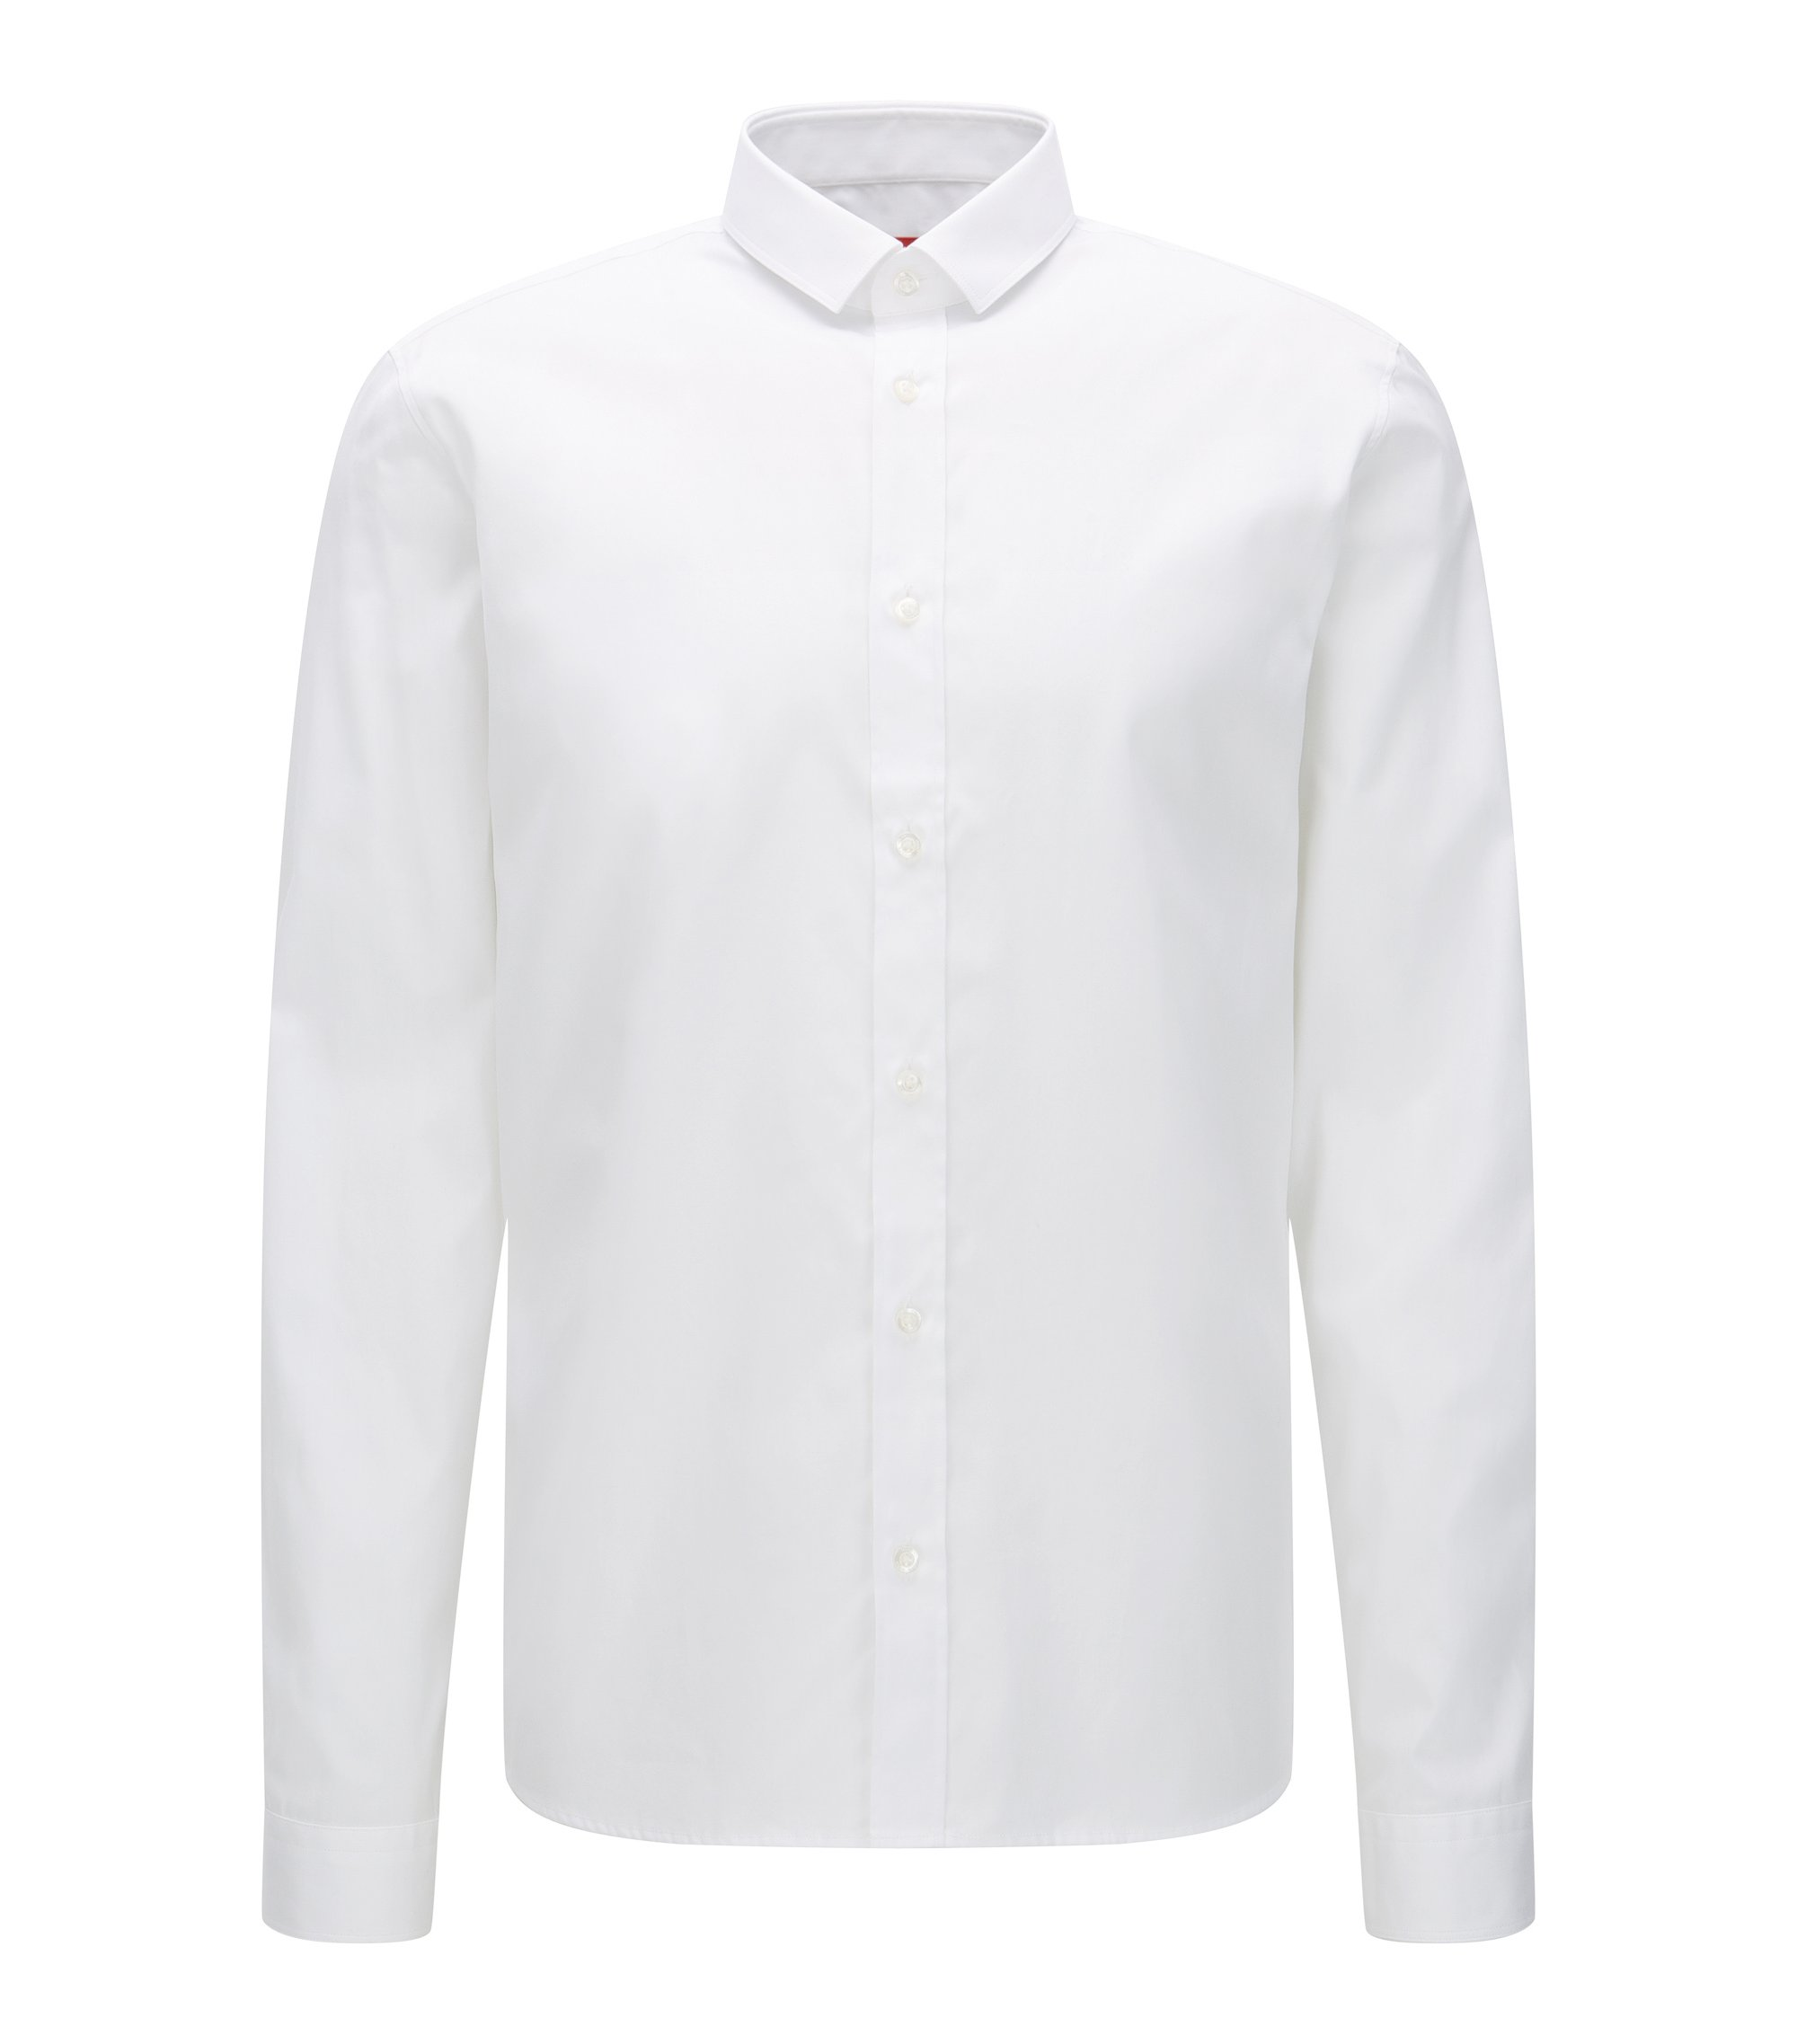 Cotton Zipper Button Down Shirt, Relaxed Fit | Ekong, Open White